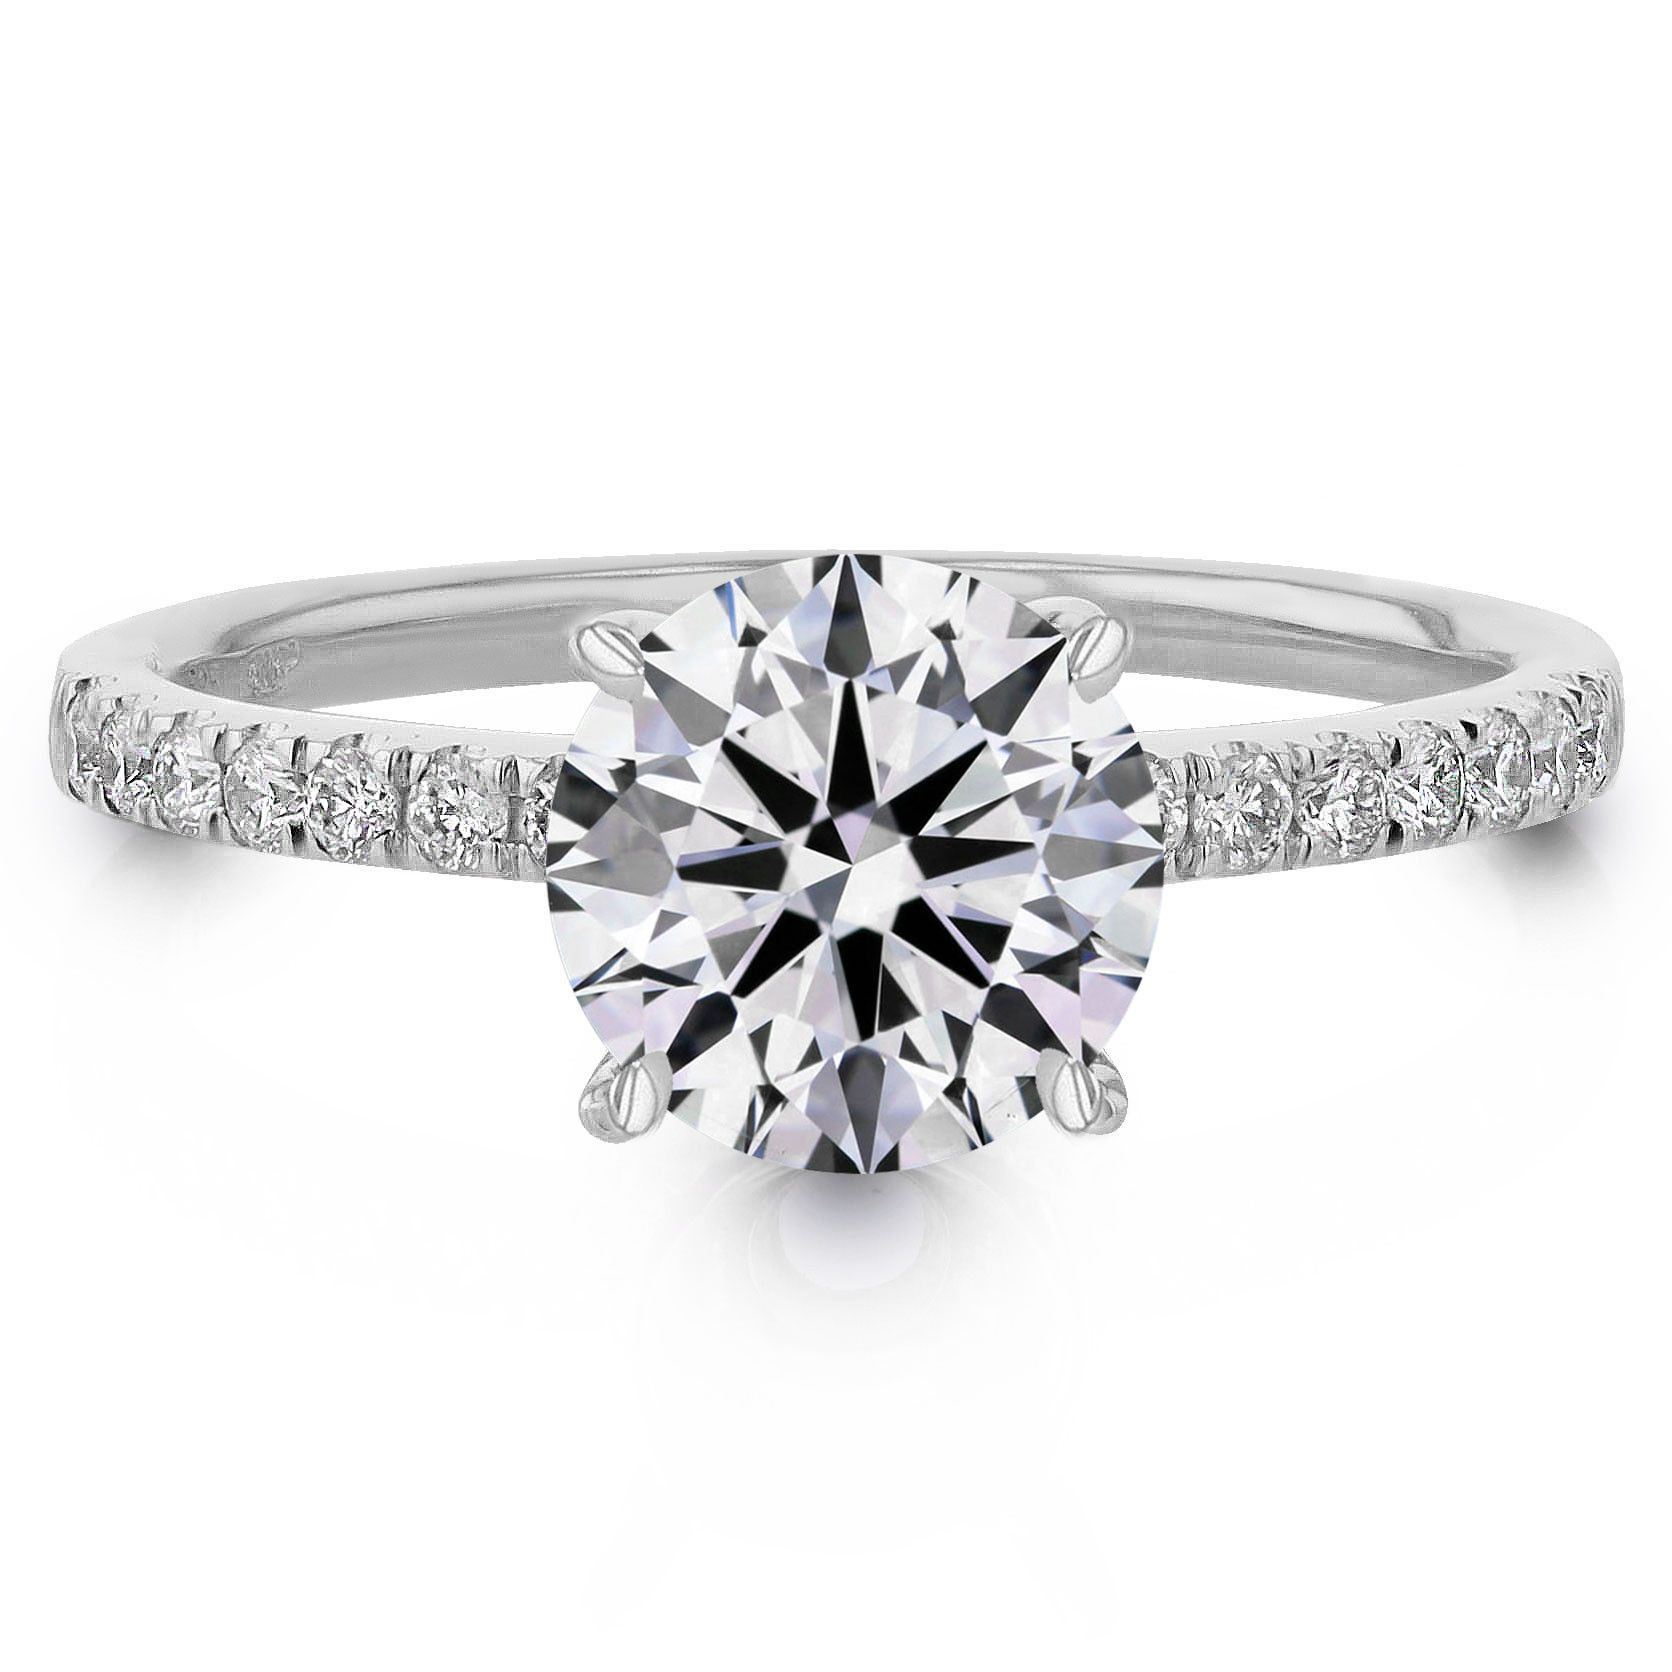 Juliette engagement ring engagement ring and wedding